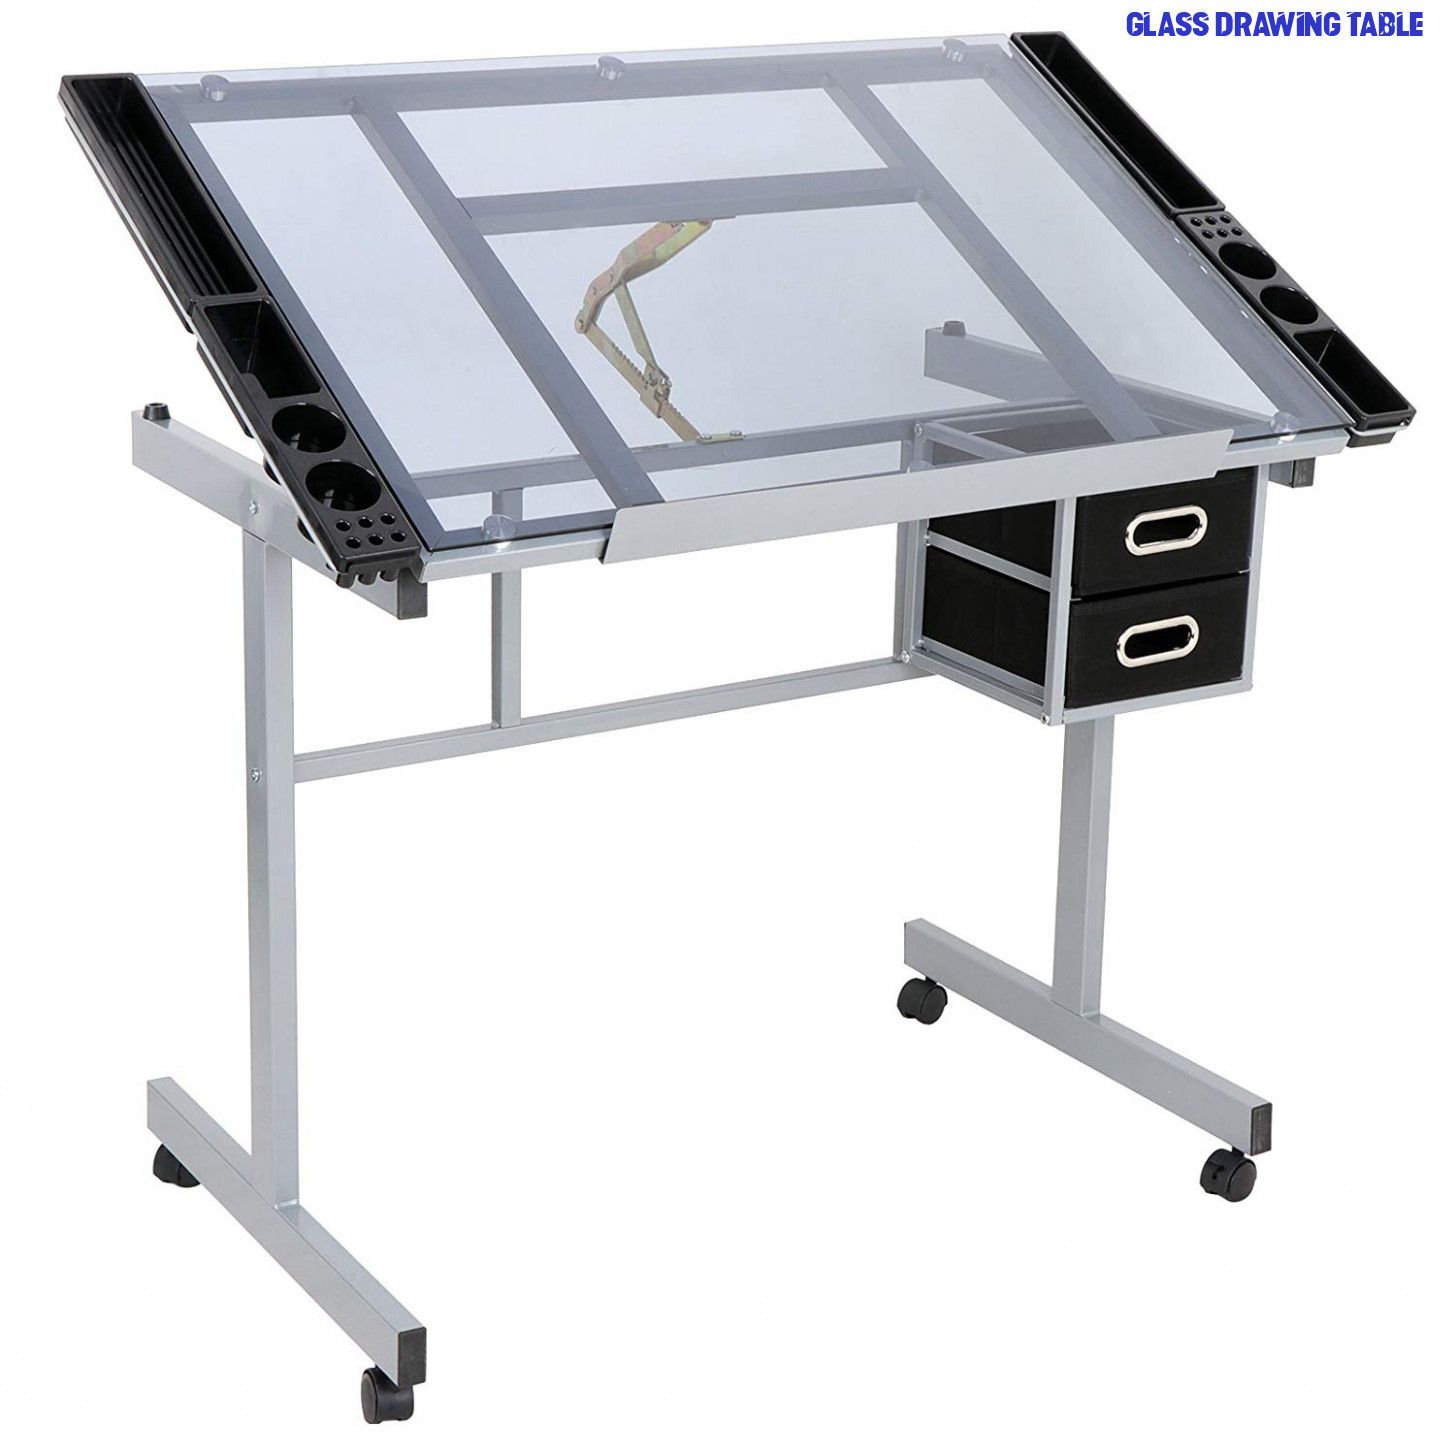 Adjustable Drafting Table Drawing Desk Craft Station Art Craft Glass Top W// 2 /&